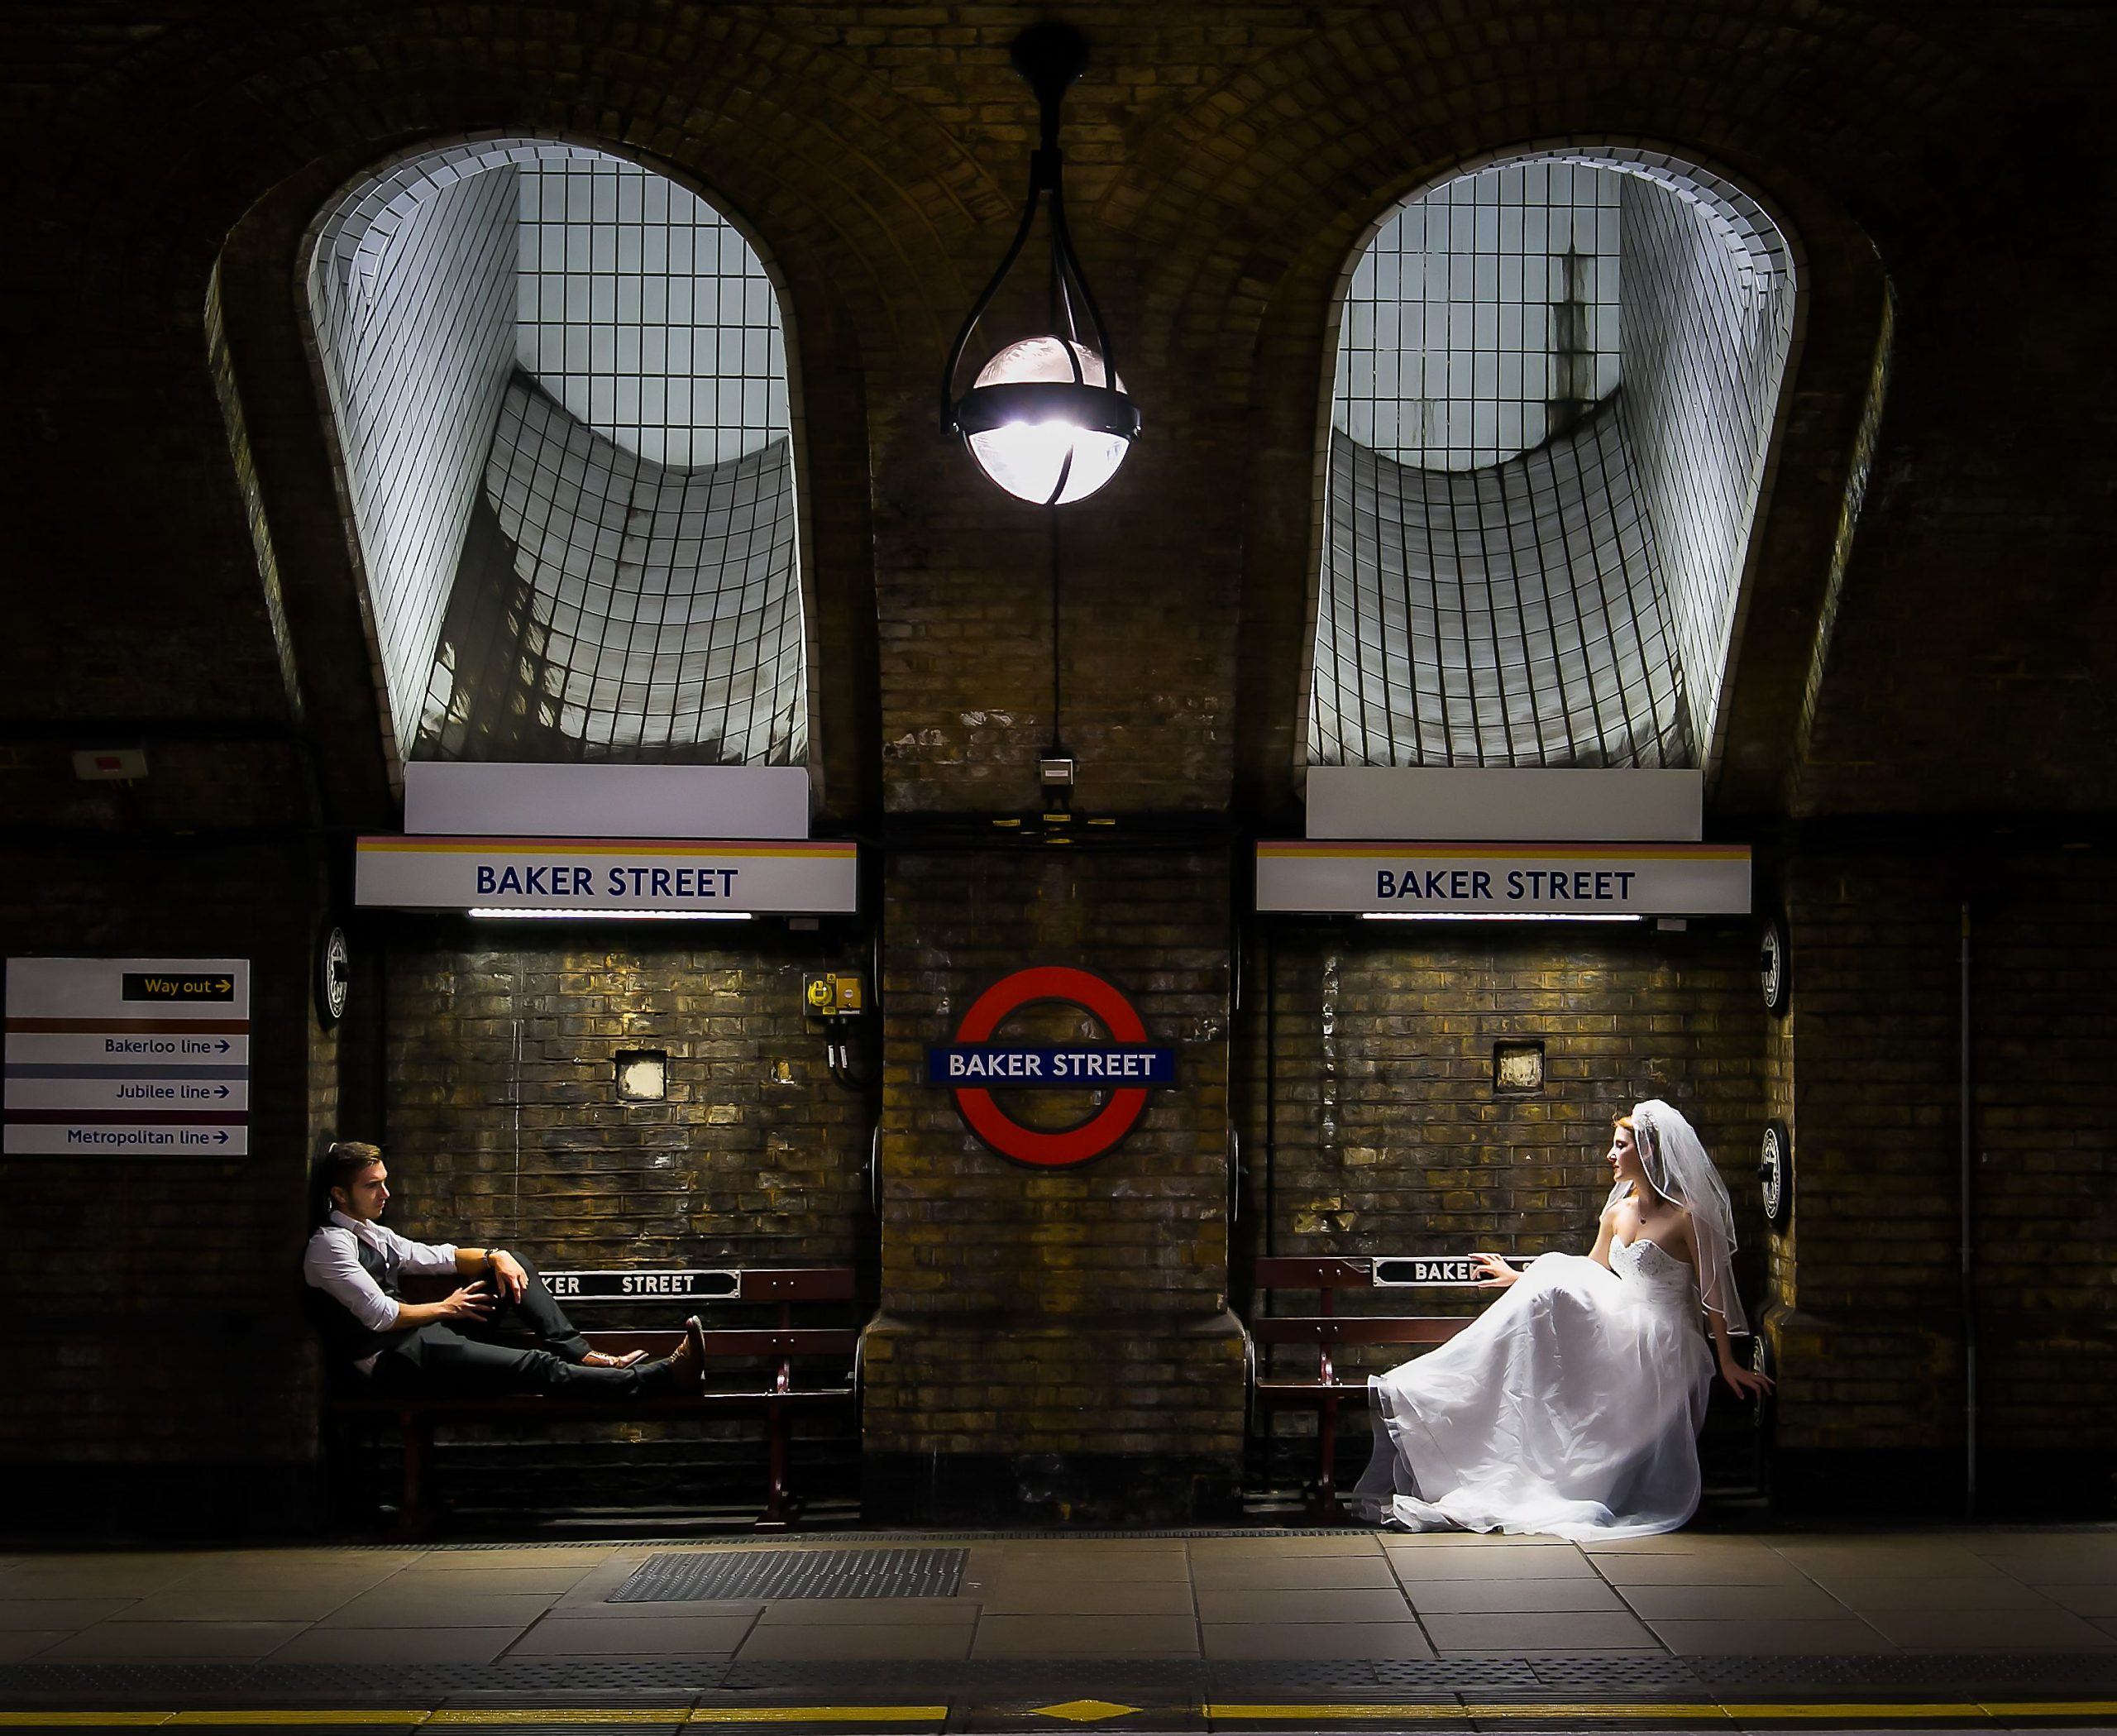 Bride and Groom portrait at Baker Street tube station in London